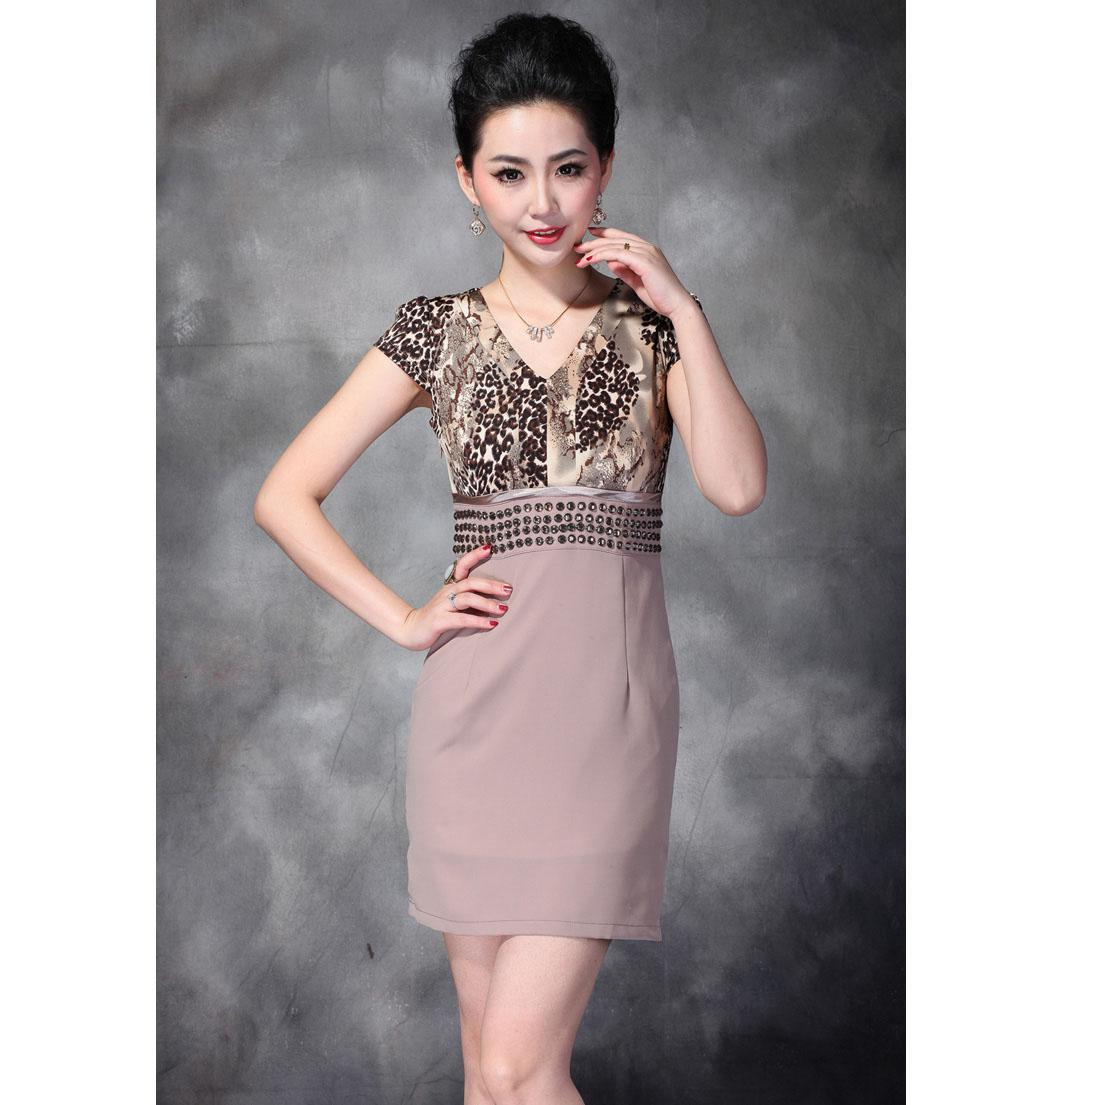 tradetangreviews's articles tagged wholesale women clothing